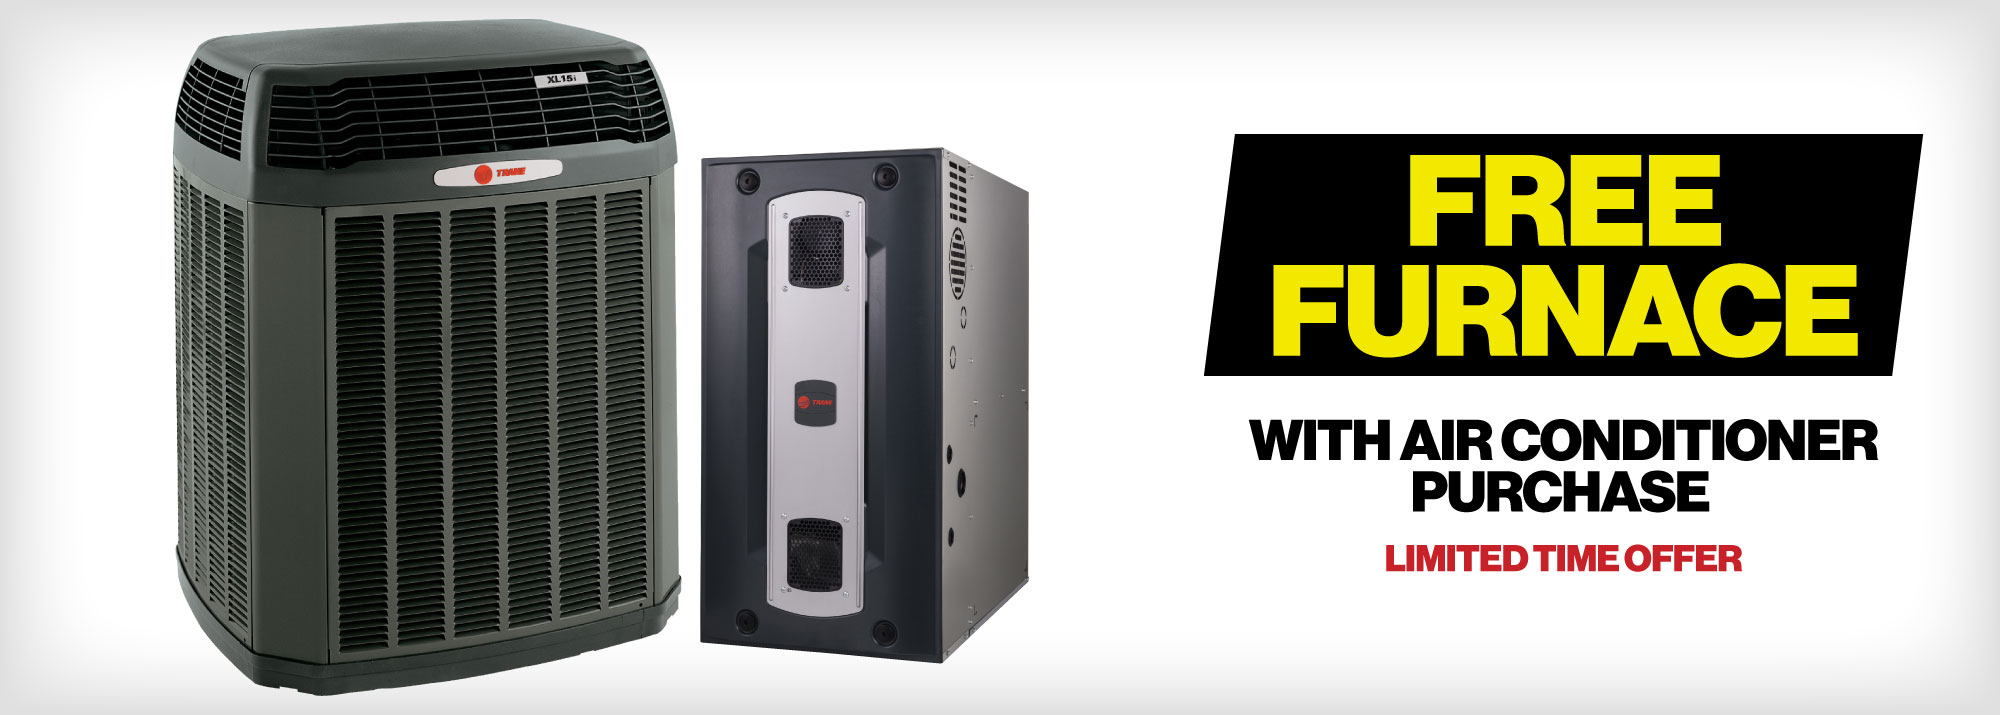 Free Furnace Special